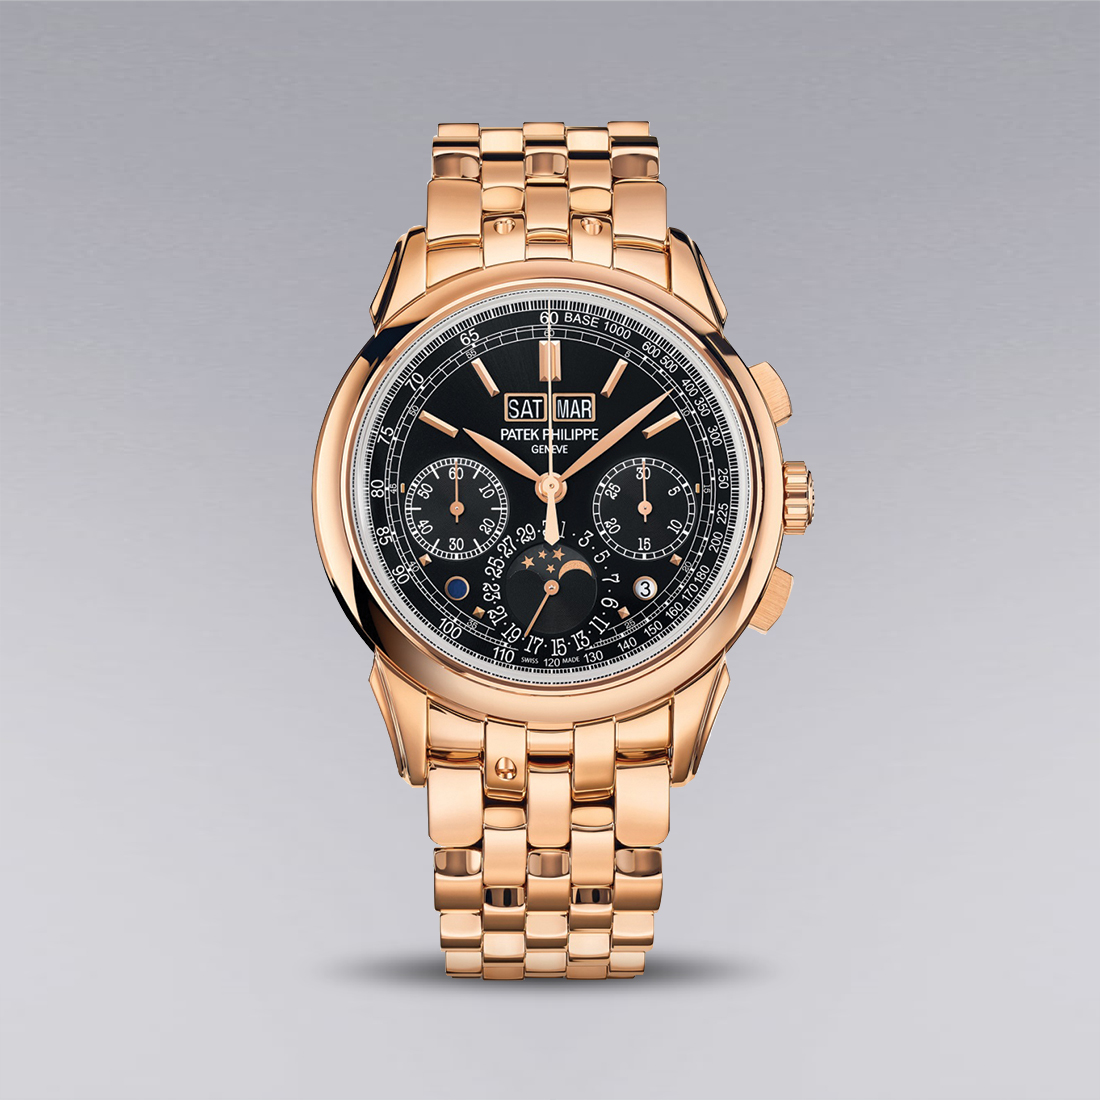 Baselworld 2018: the best of Rolex, Tudor and Patek Philippe